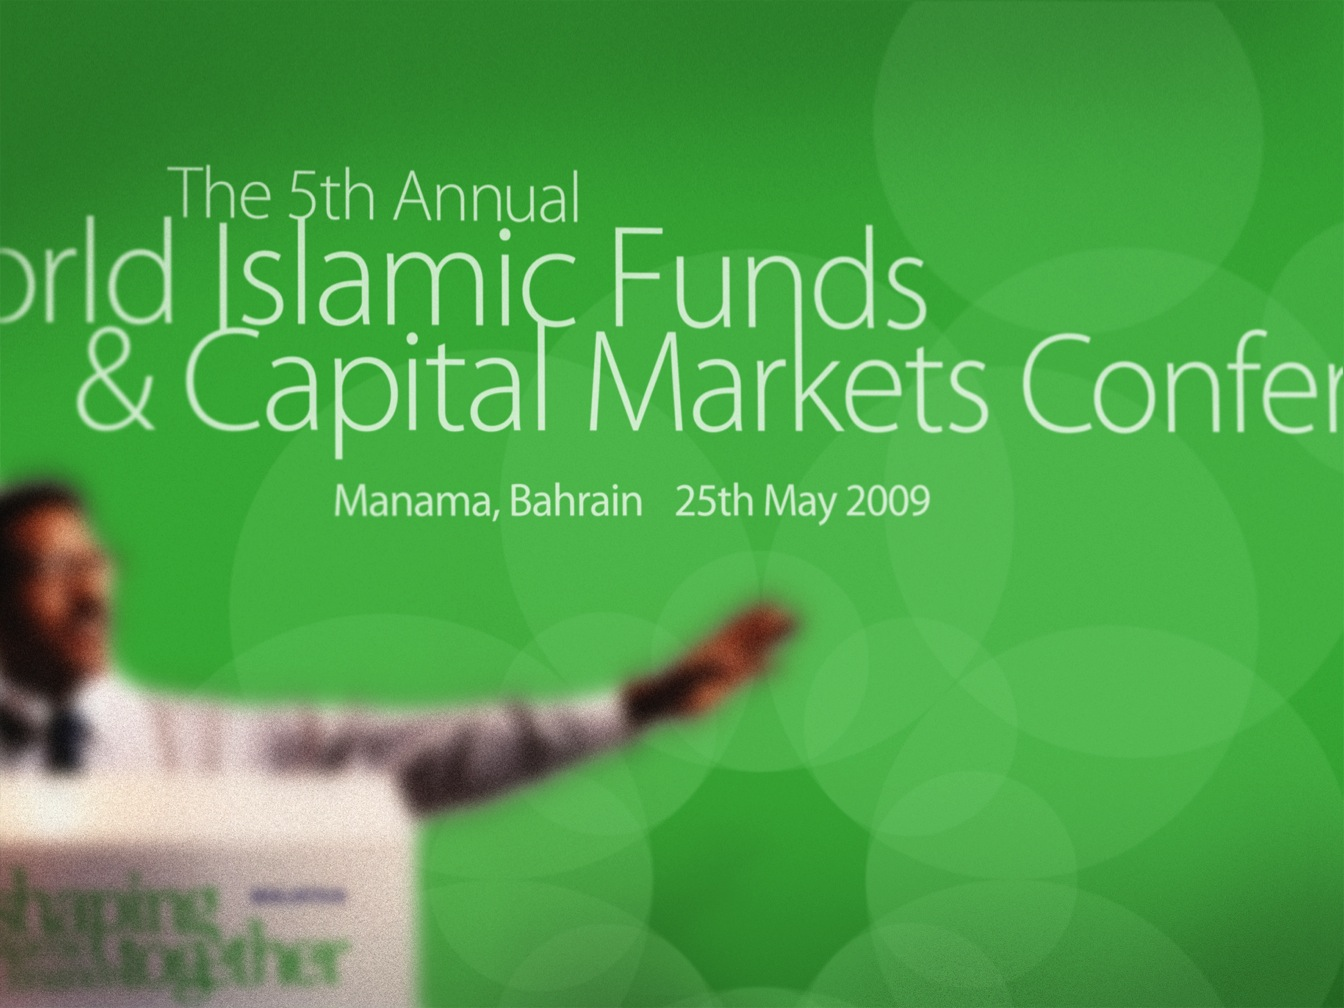 Shaping Islamic Finance Together